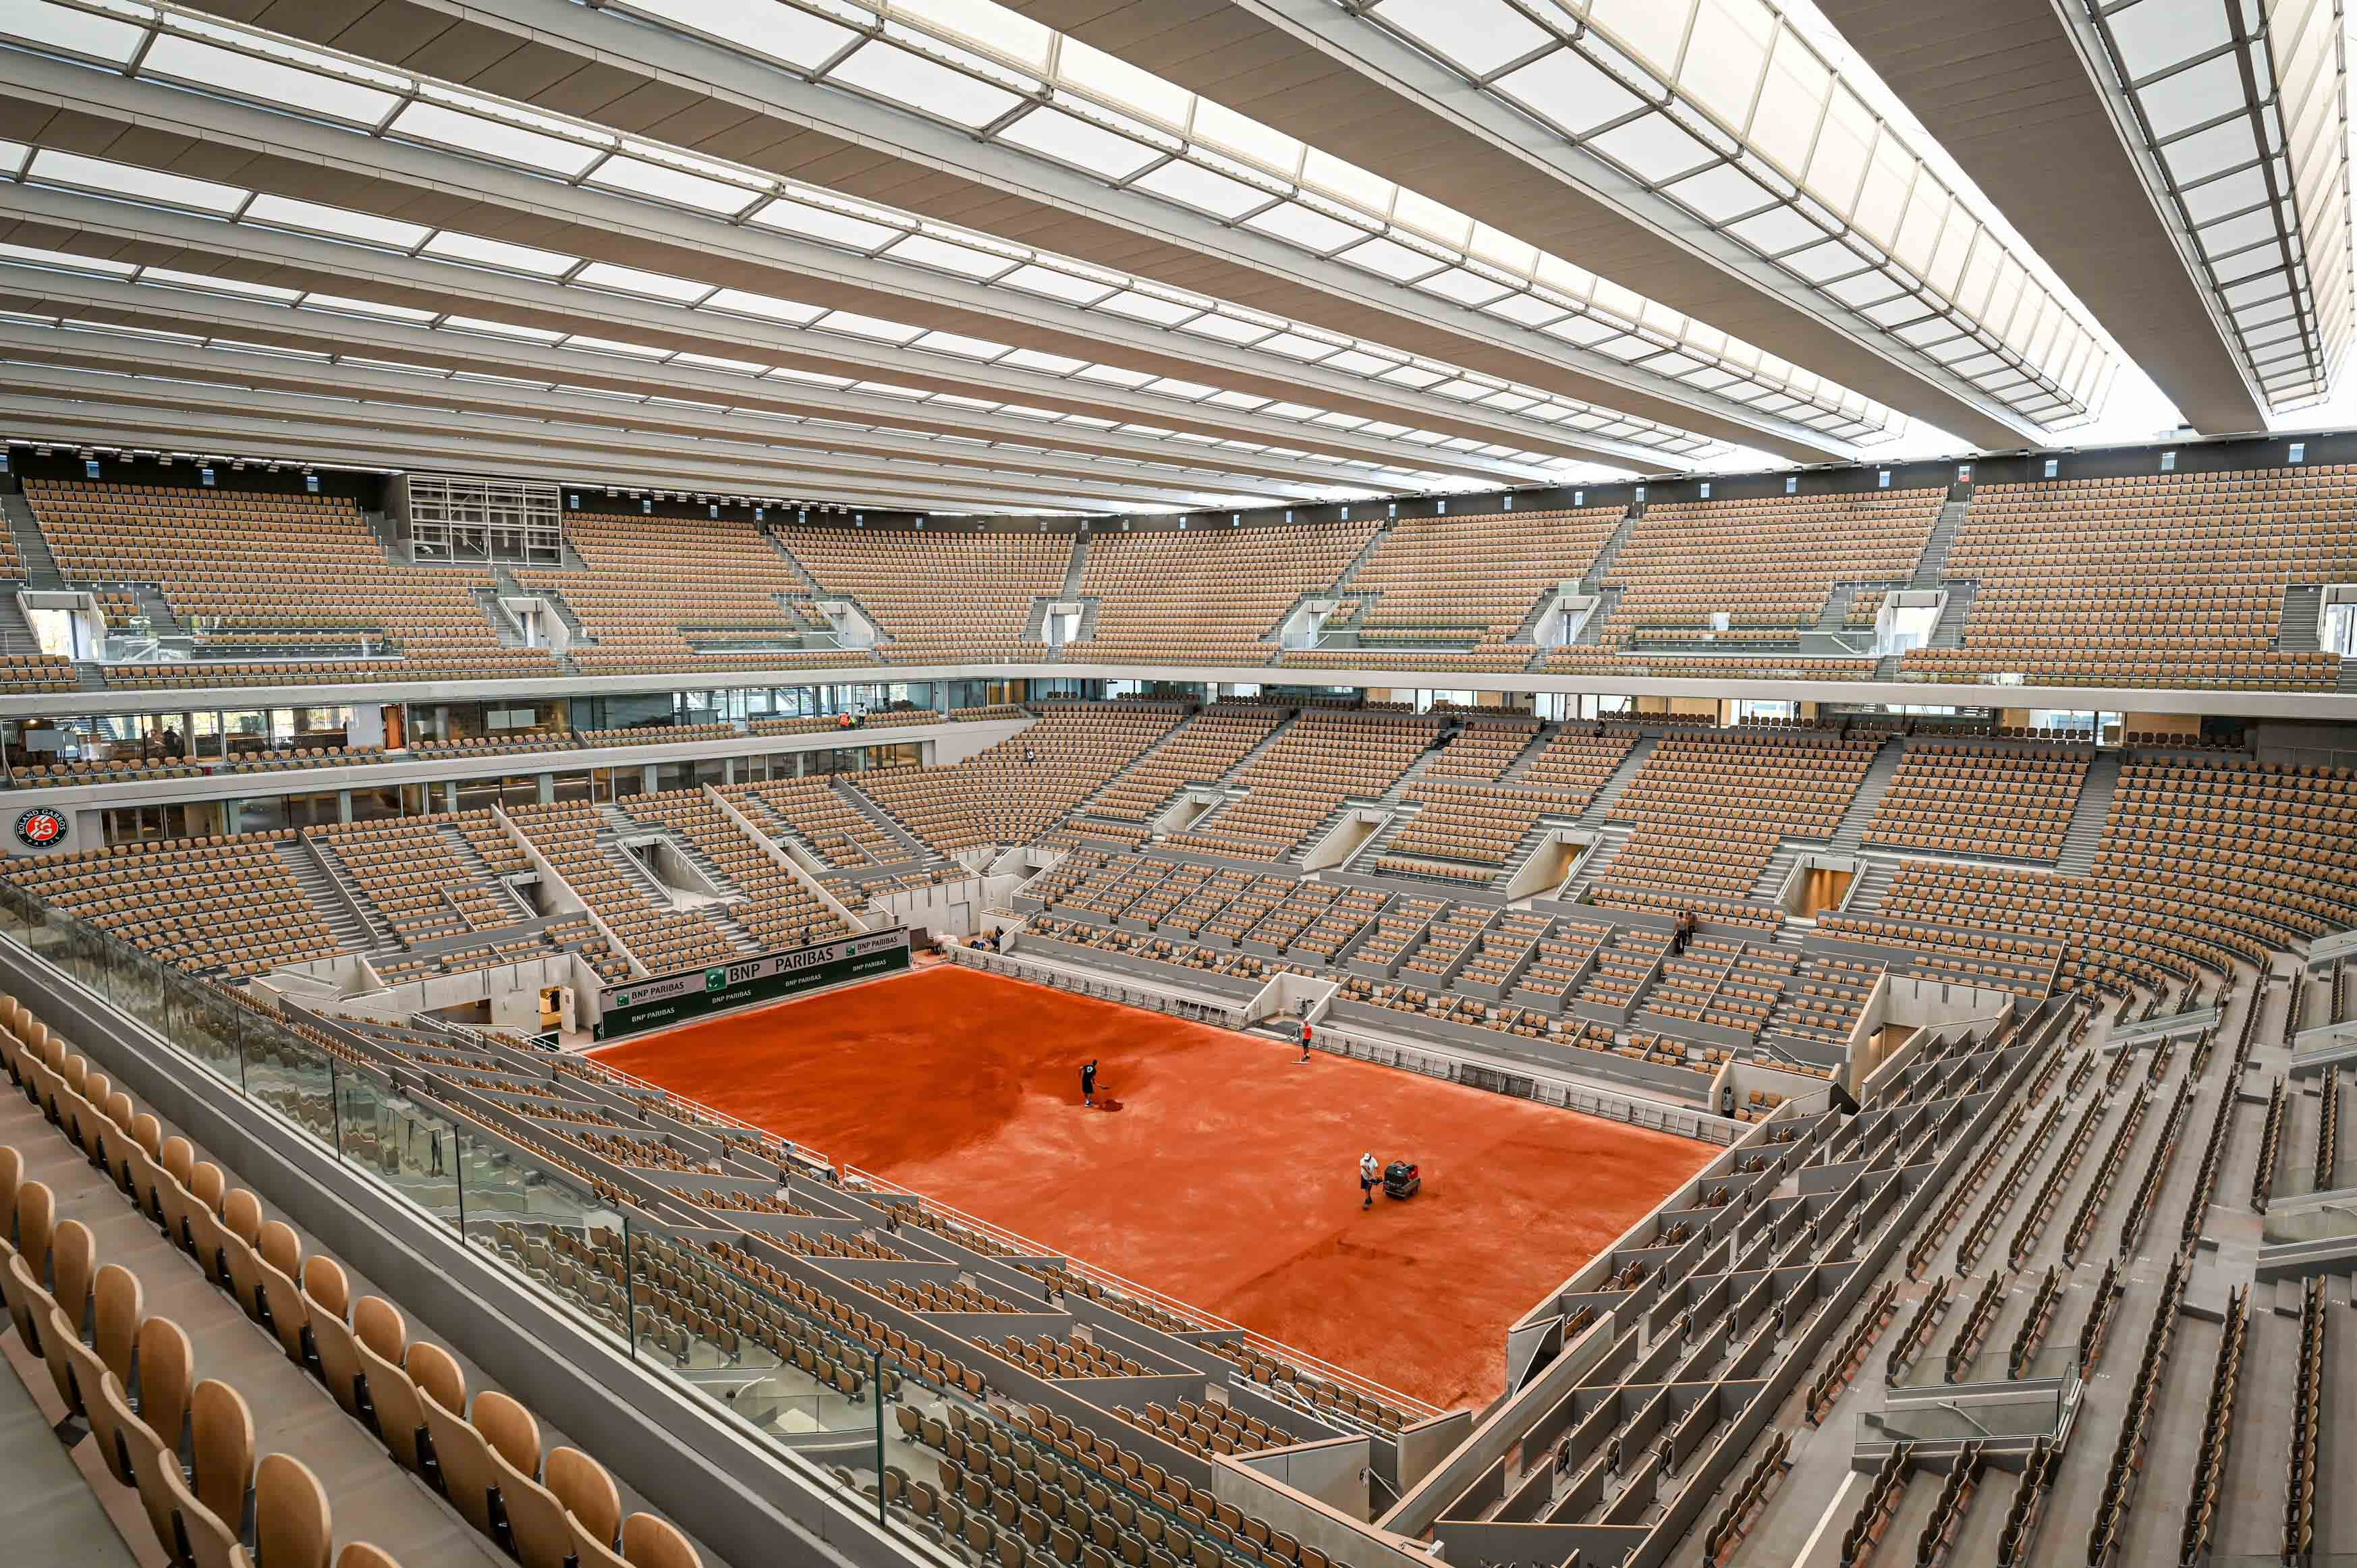 Red clay being put on the new Philippe-Chatrier court September 2020